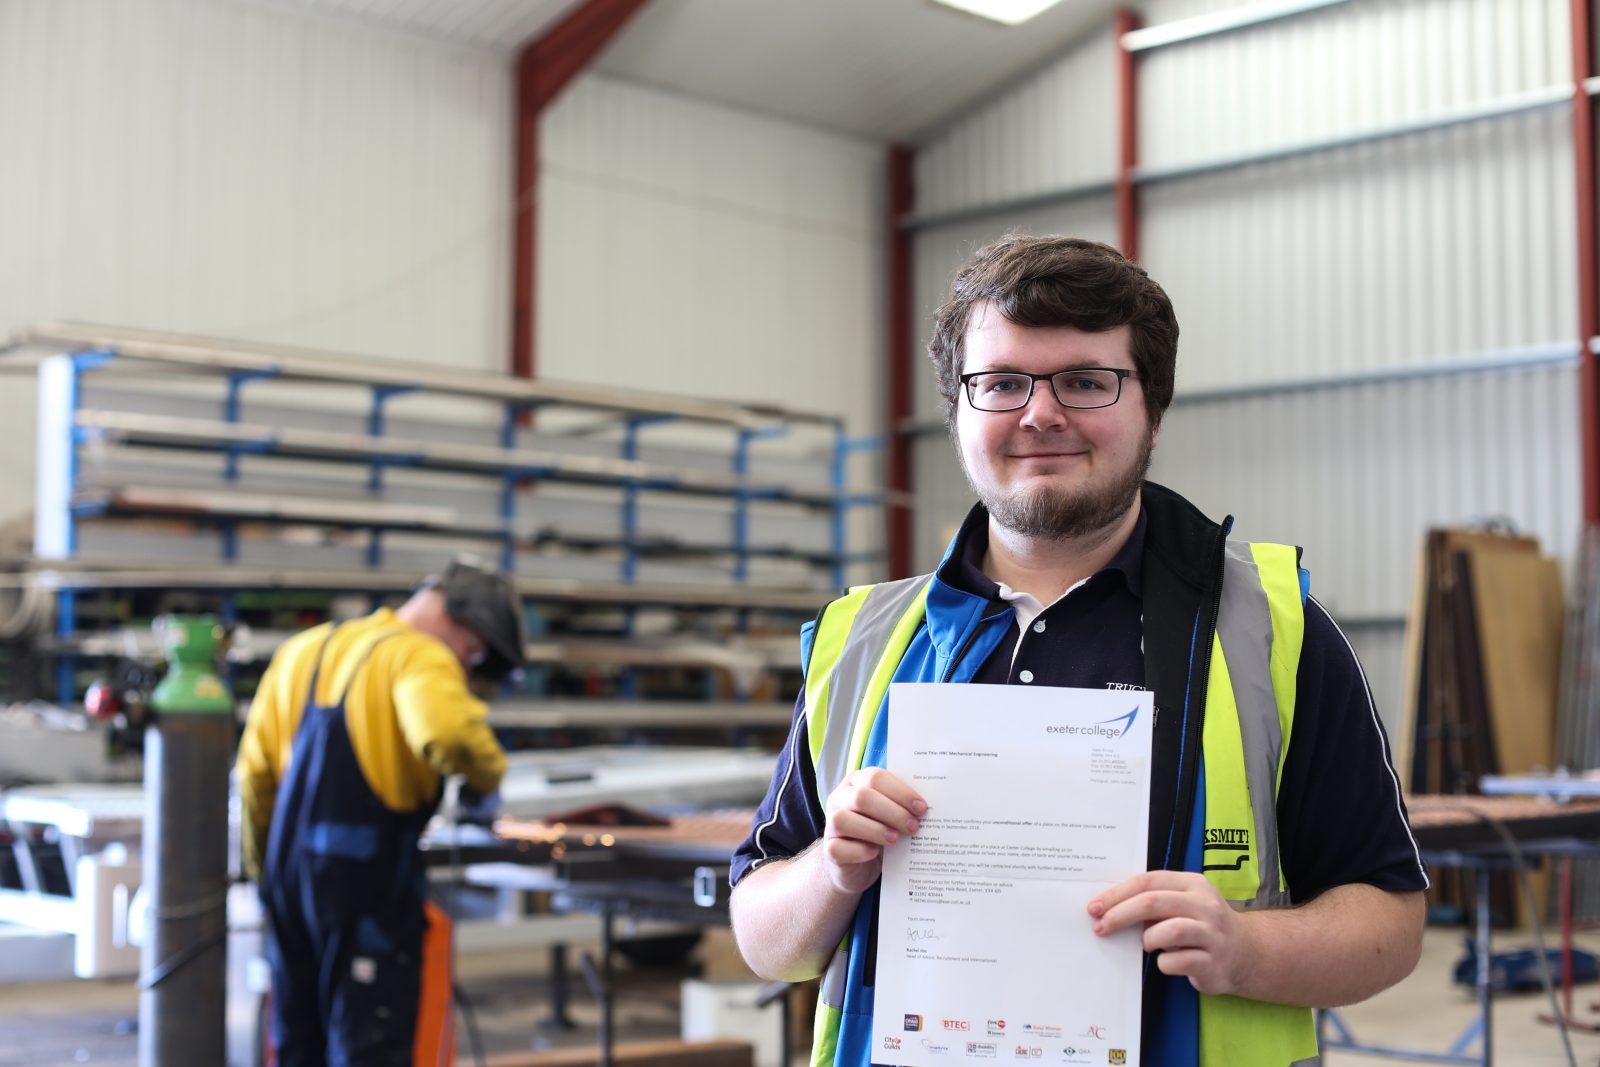 Trucksmith's Adam Barnett hold his acceptance to Exeter College letter whilst stood in an engineering workshop